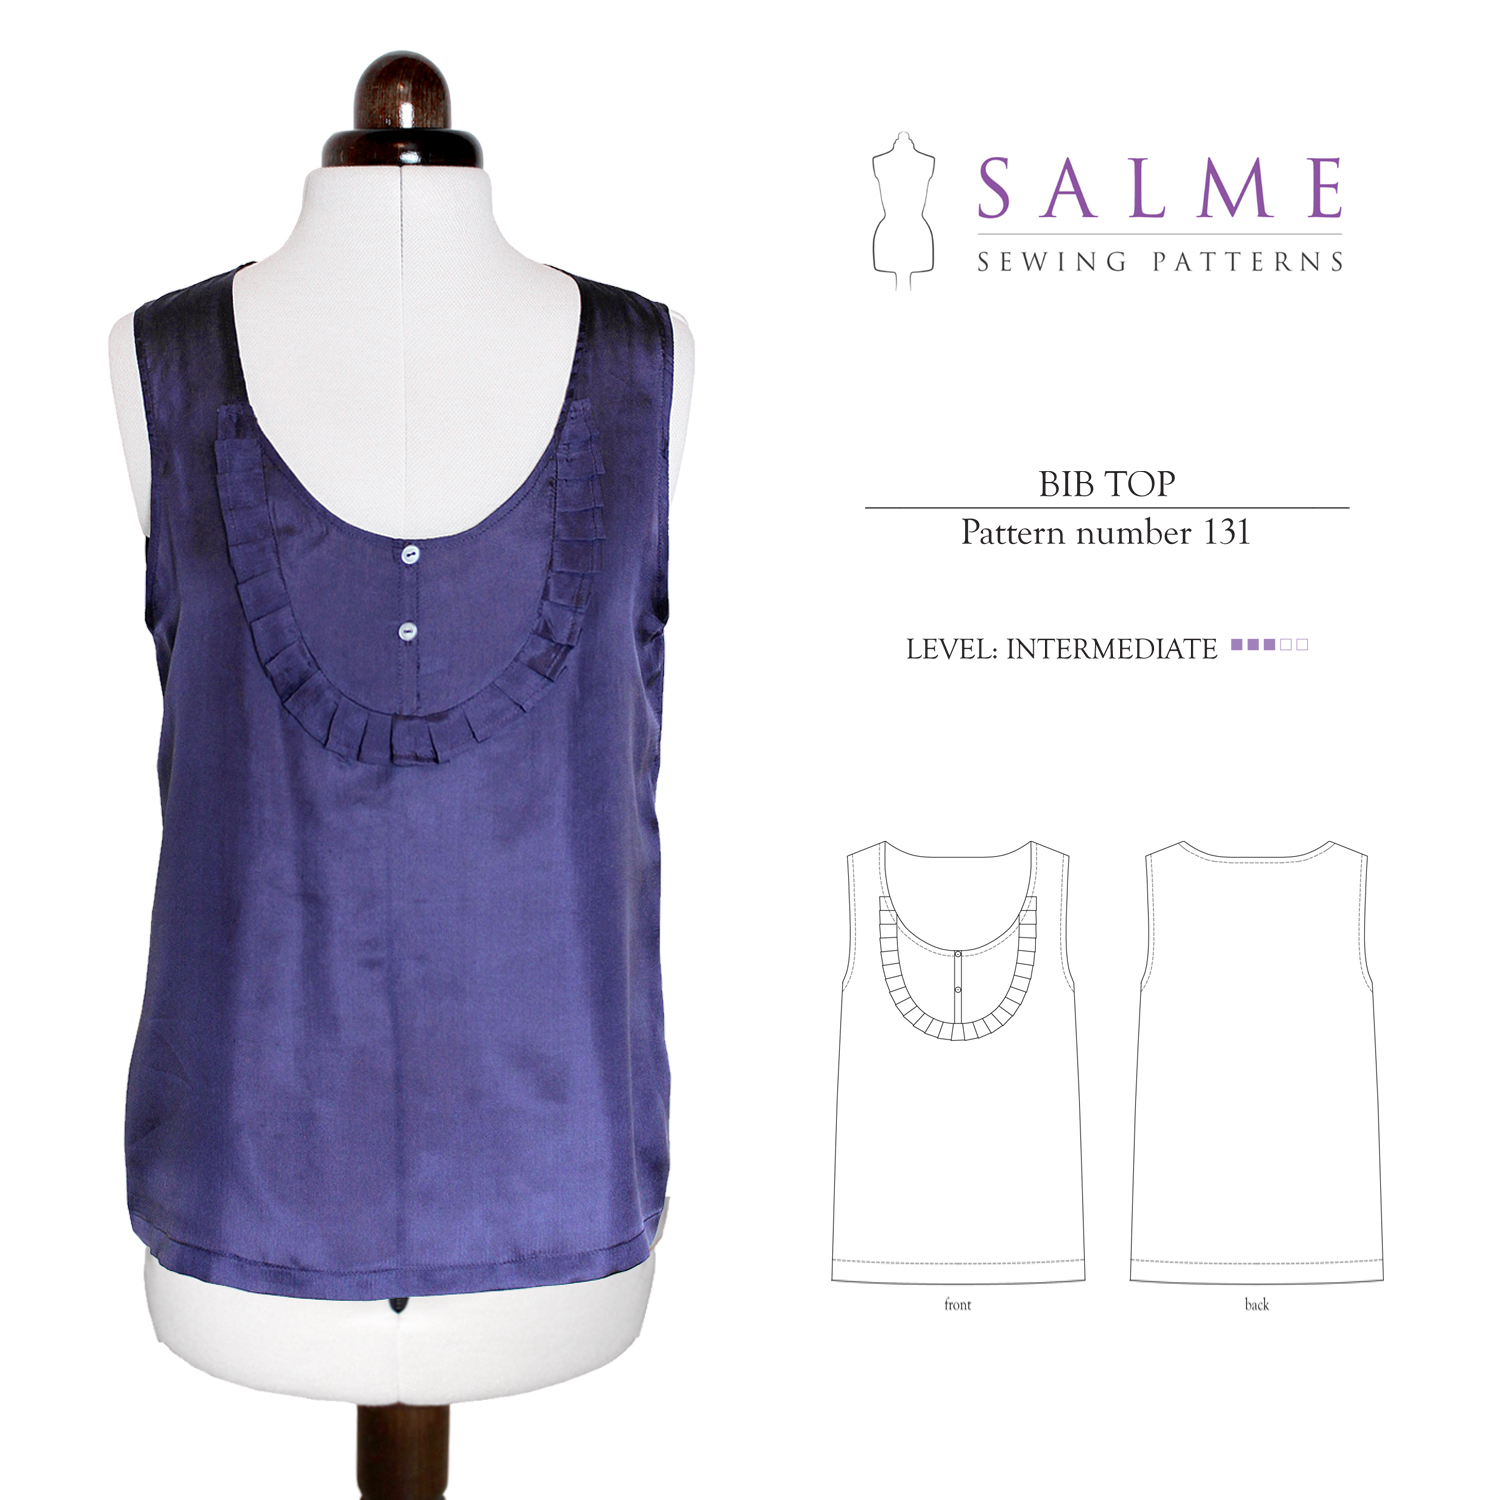 Salme sewing patterns 131 bib top downloadable pattern prevnext jeuxipadfo Image collections